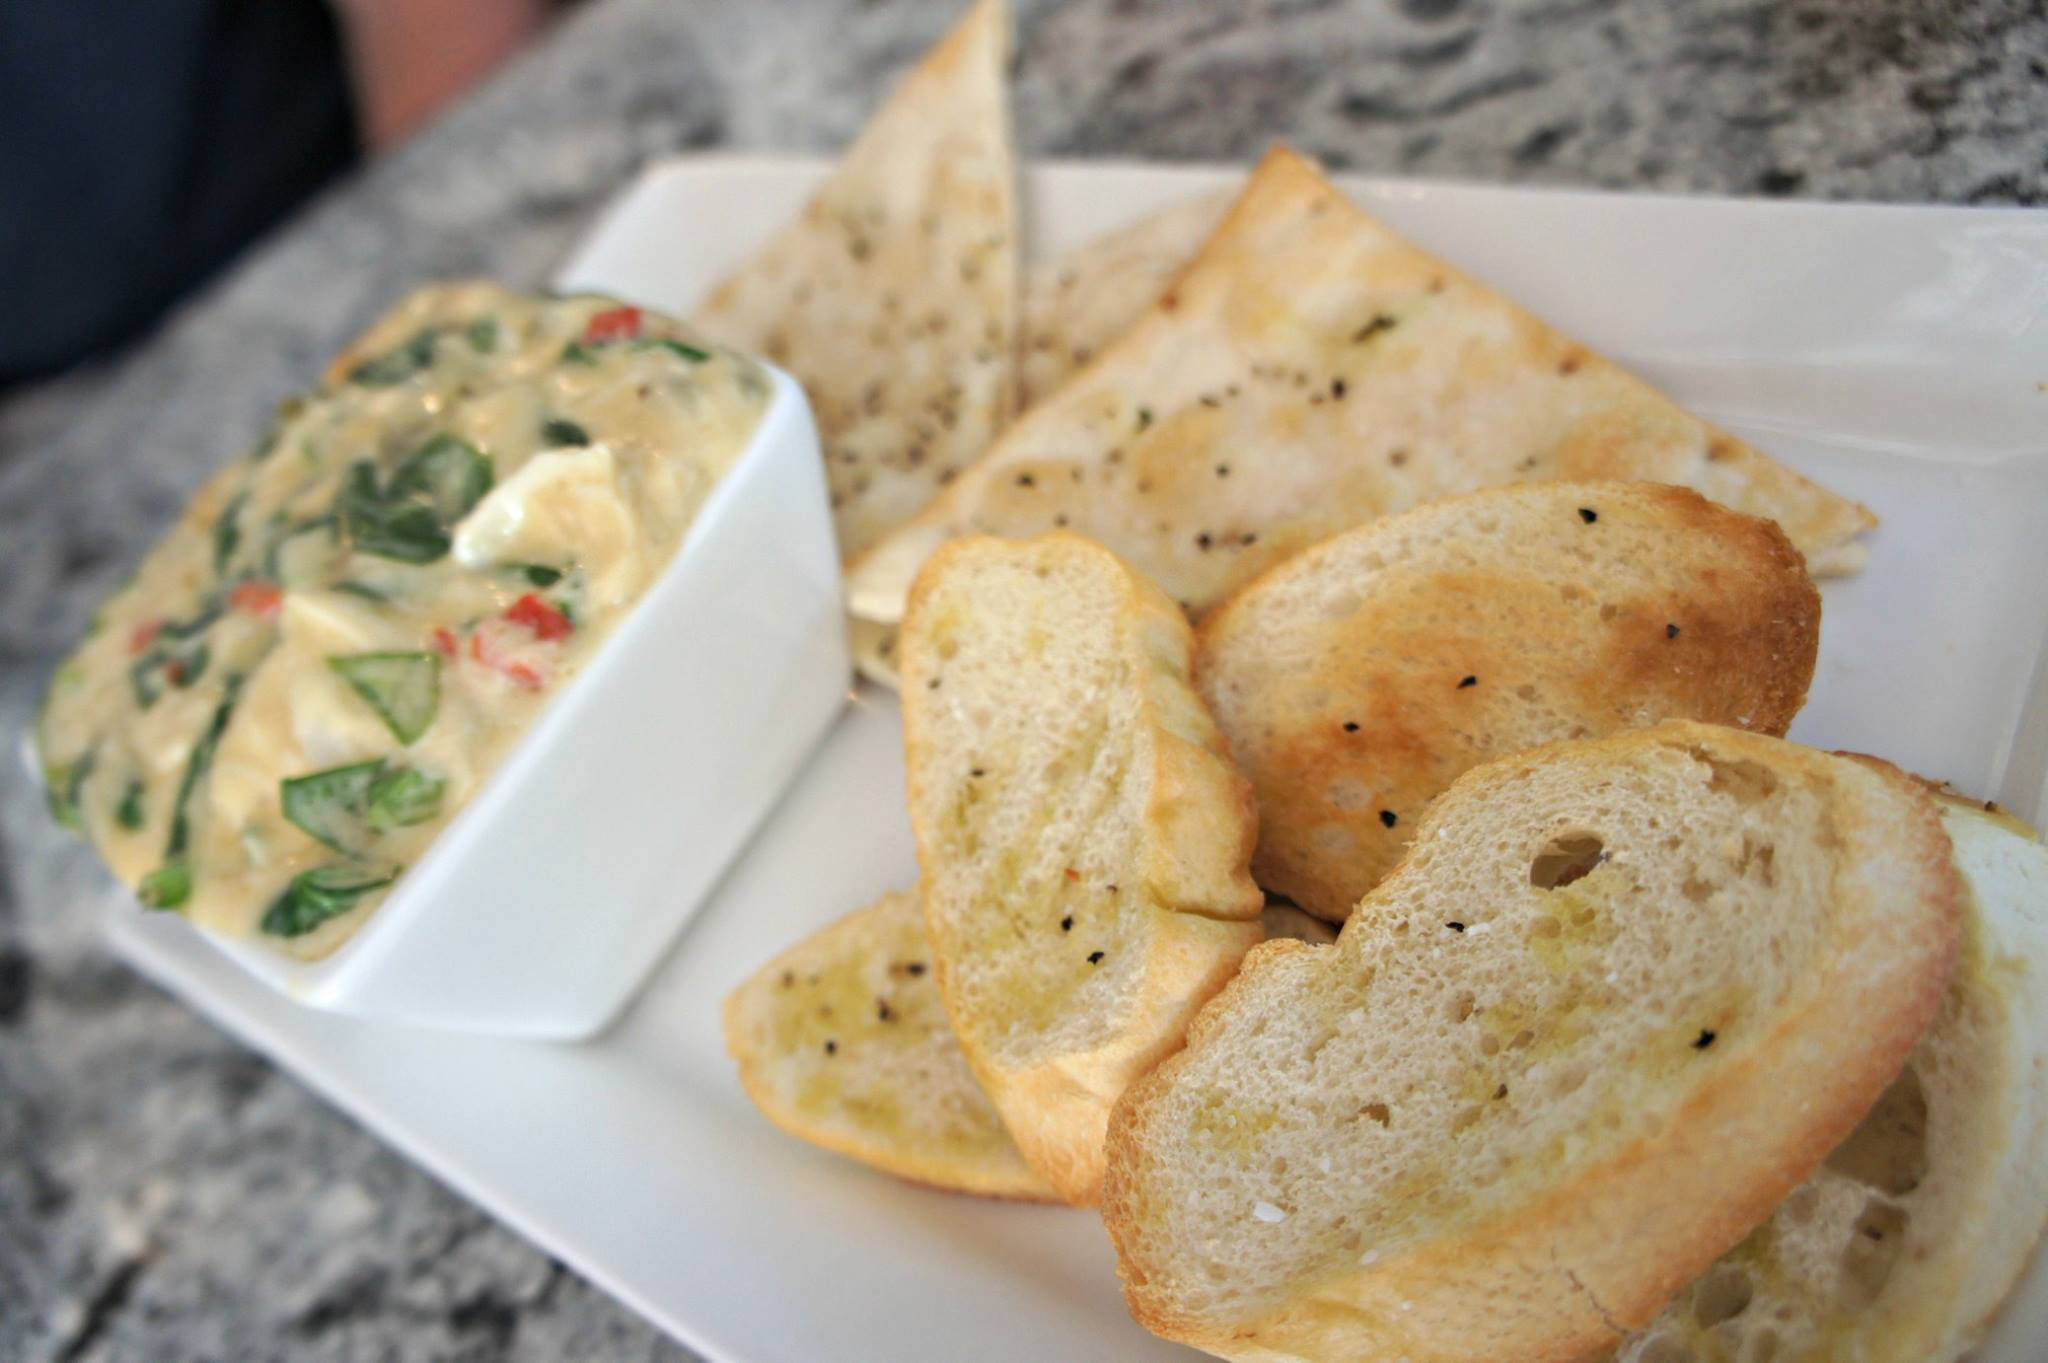 Grilled bread and pita bites served with a side of dipping sauce